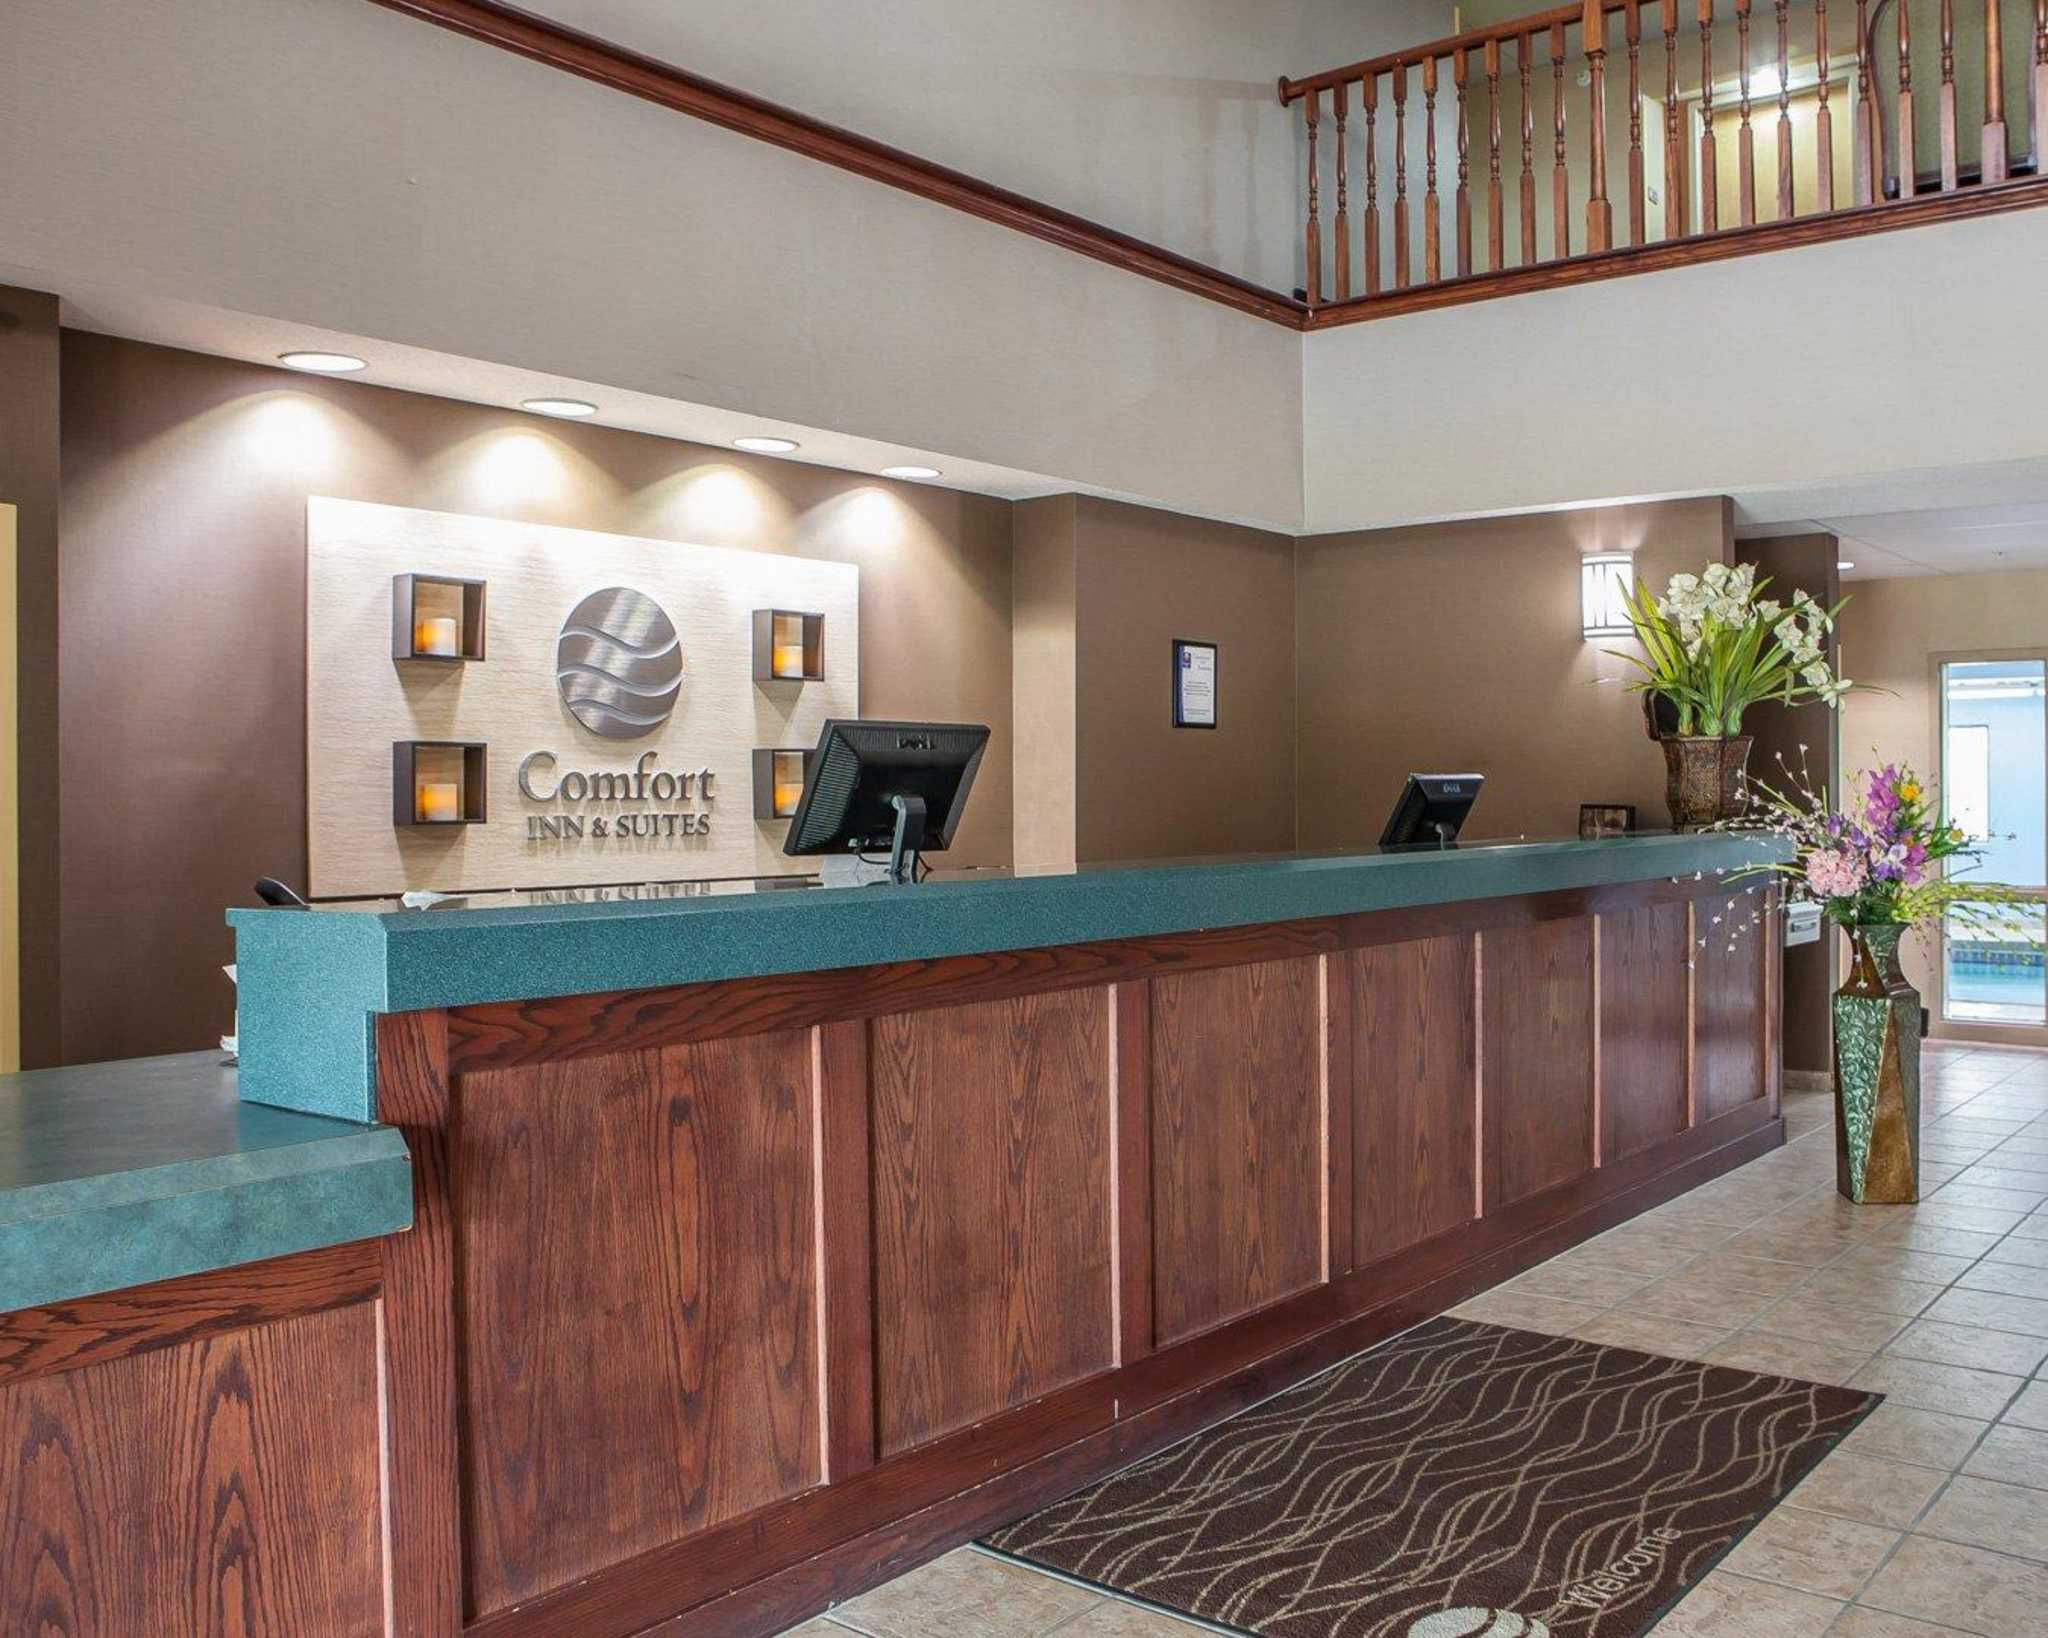 Comfort Inn & Suites Lees Summit -Kansas City image 16